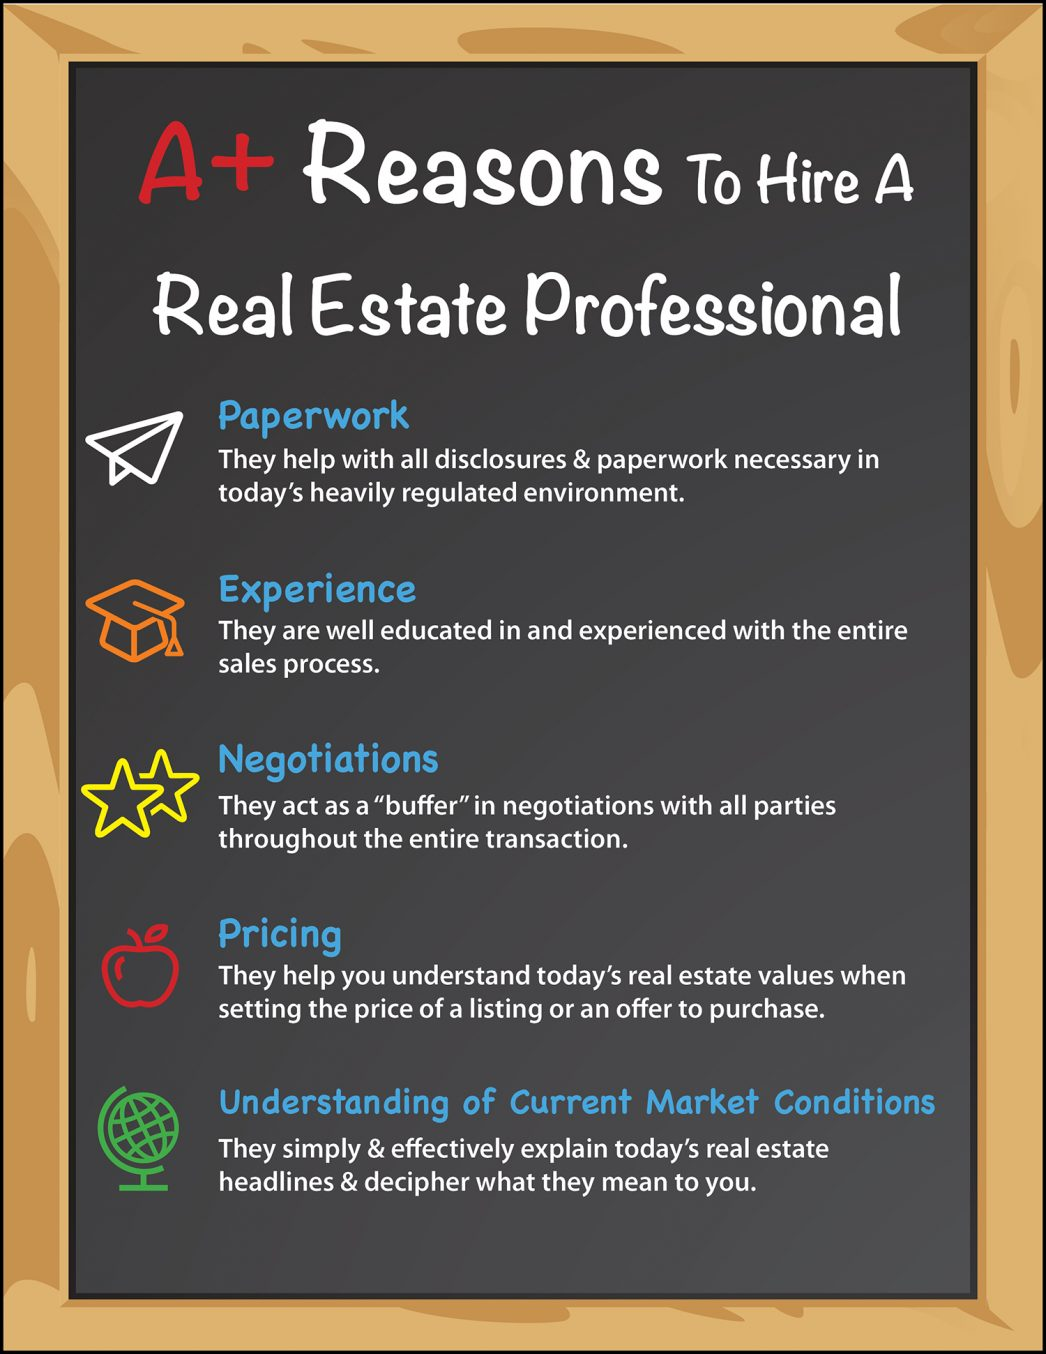 Top 5 A+ Reasons to Hire a Real Estate Pro [INFOGRAPHIC] | MyKCM